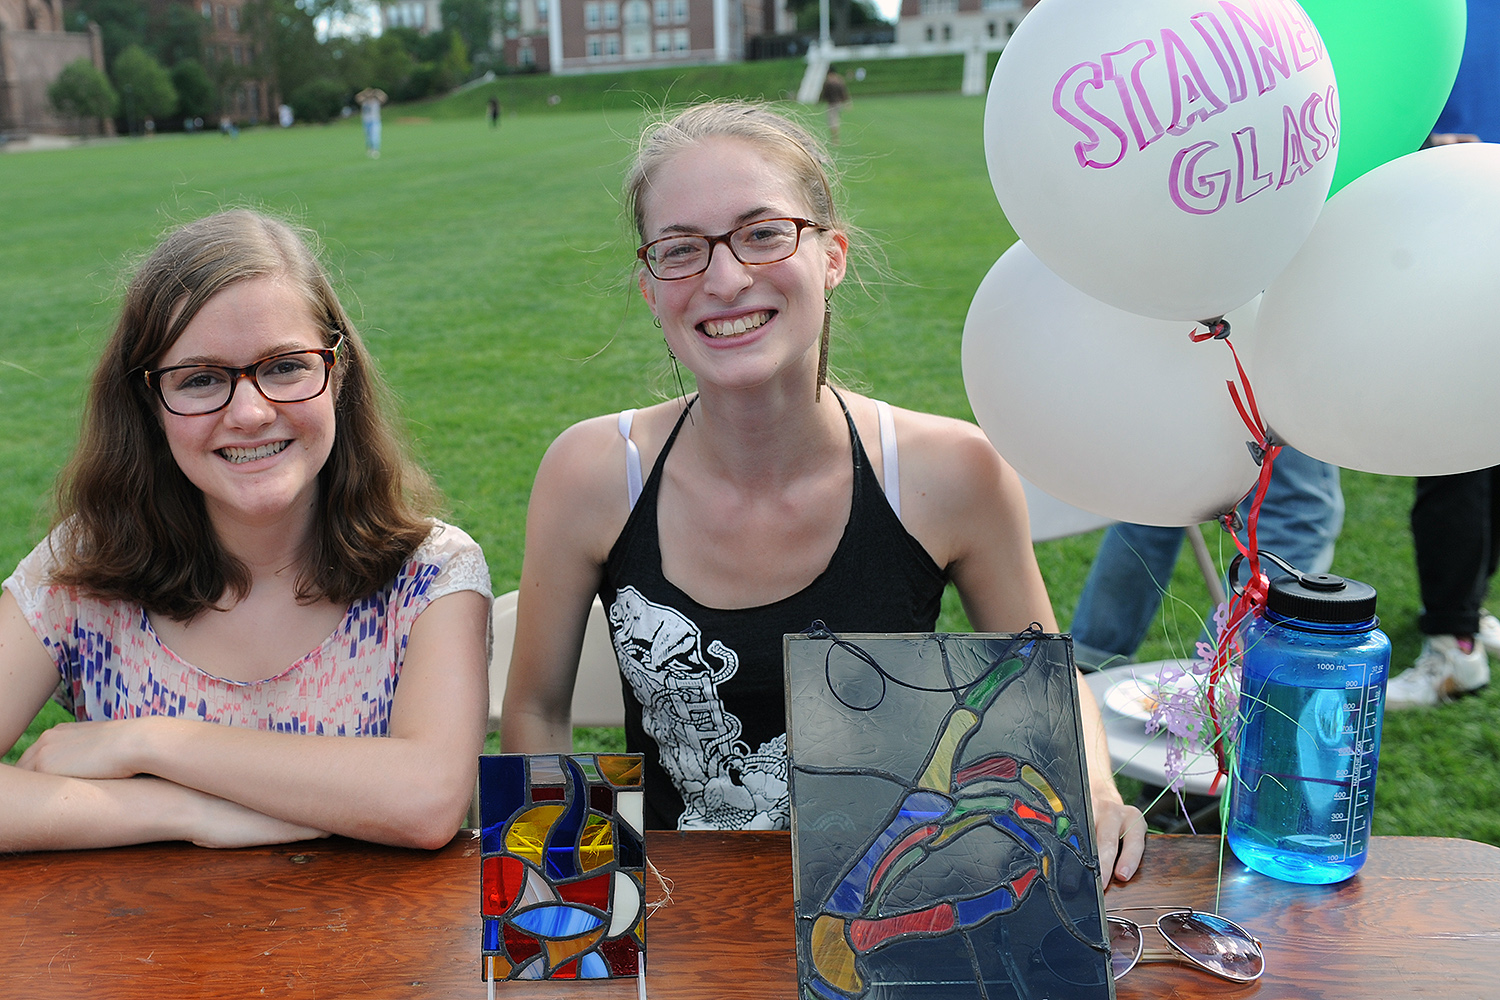 Wesleyan's Stained Glass Club teaches students how to cut and solder stained glass.